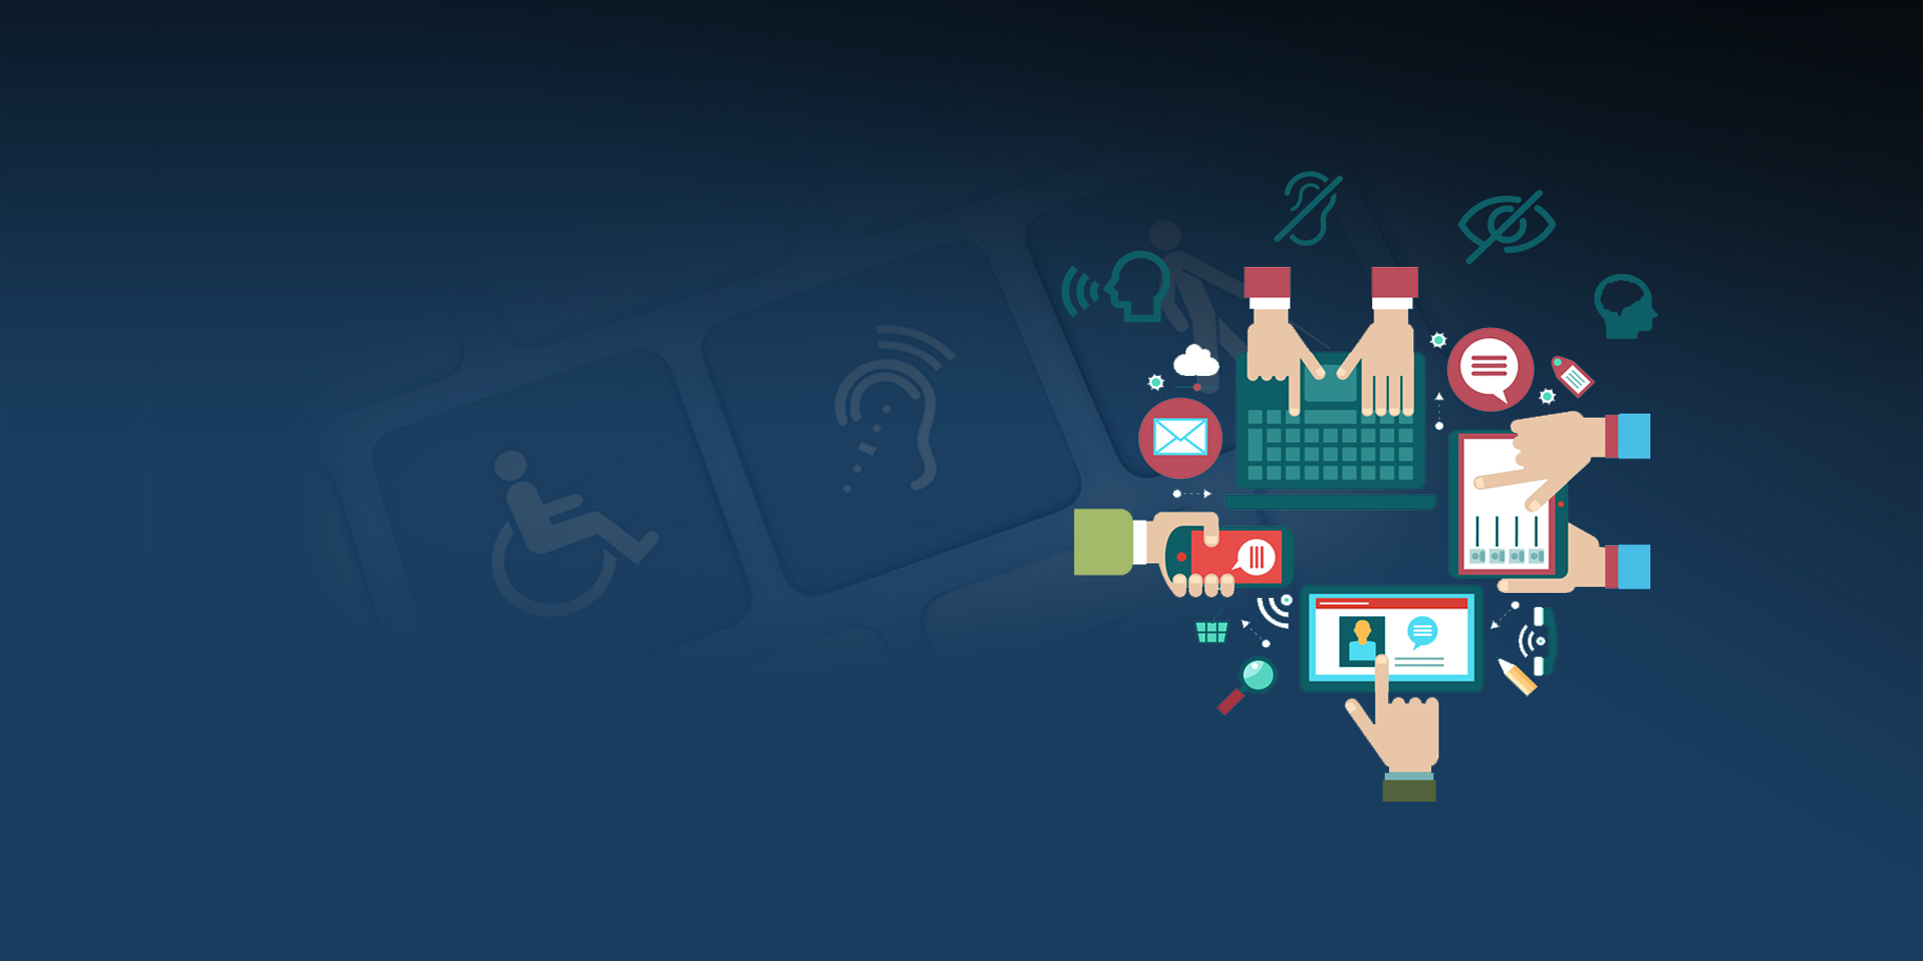 blue background representing accessibility with technology devices displayed and icons representing voice, sound, vision and cognative